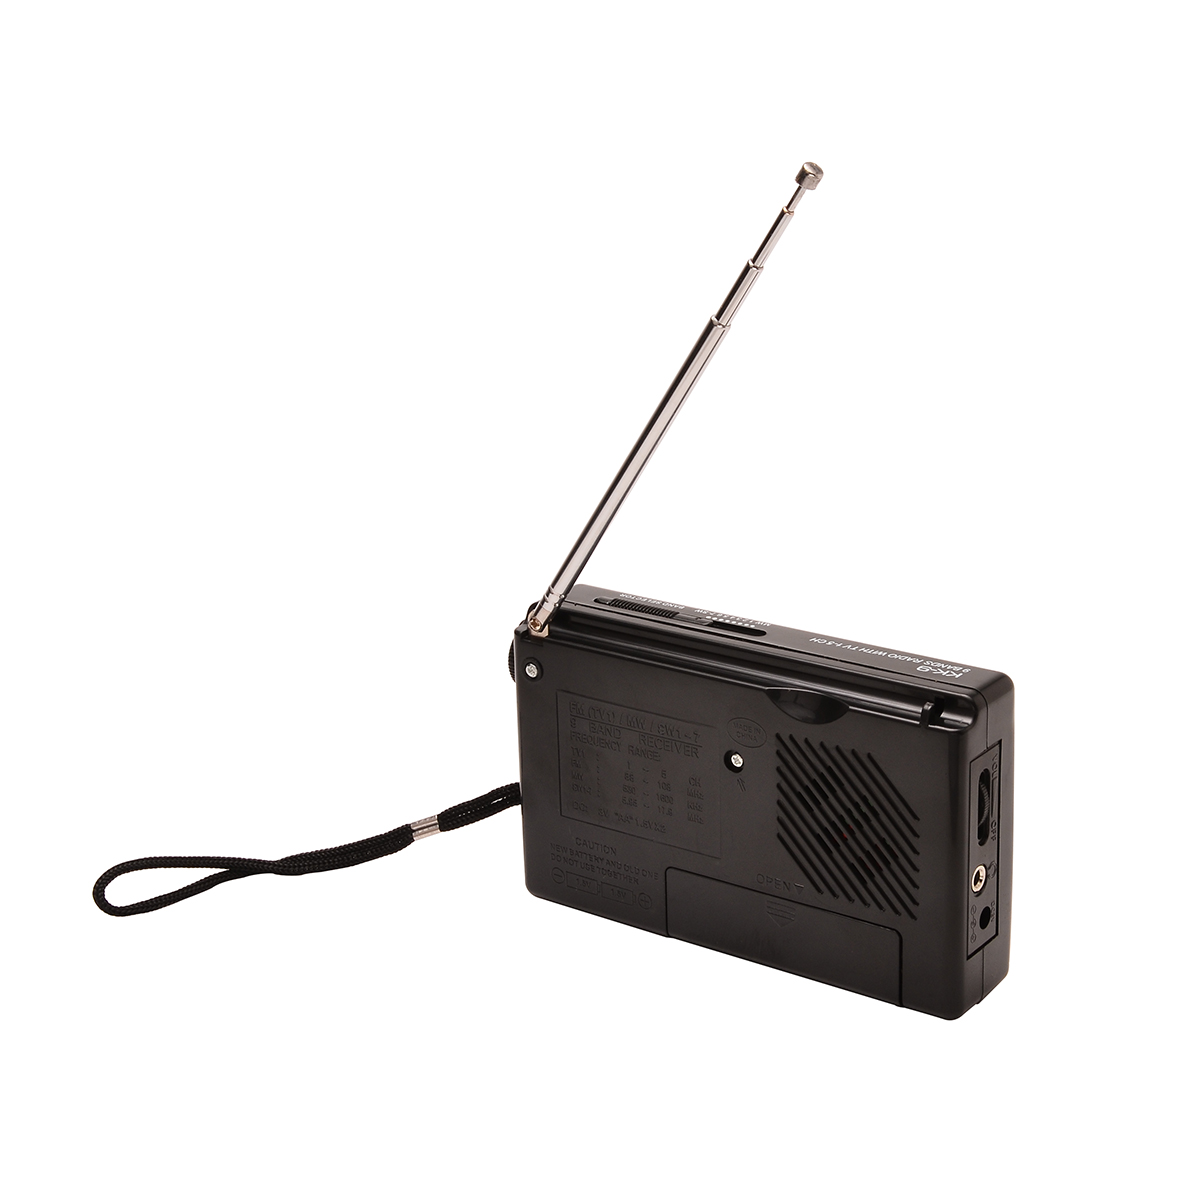 Portable Full World Band FM Stereo/MW/SW Radio Receiver Alarm Clock